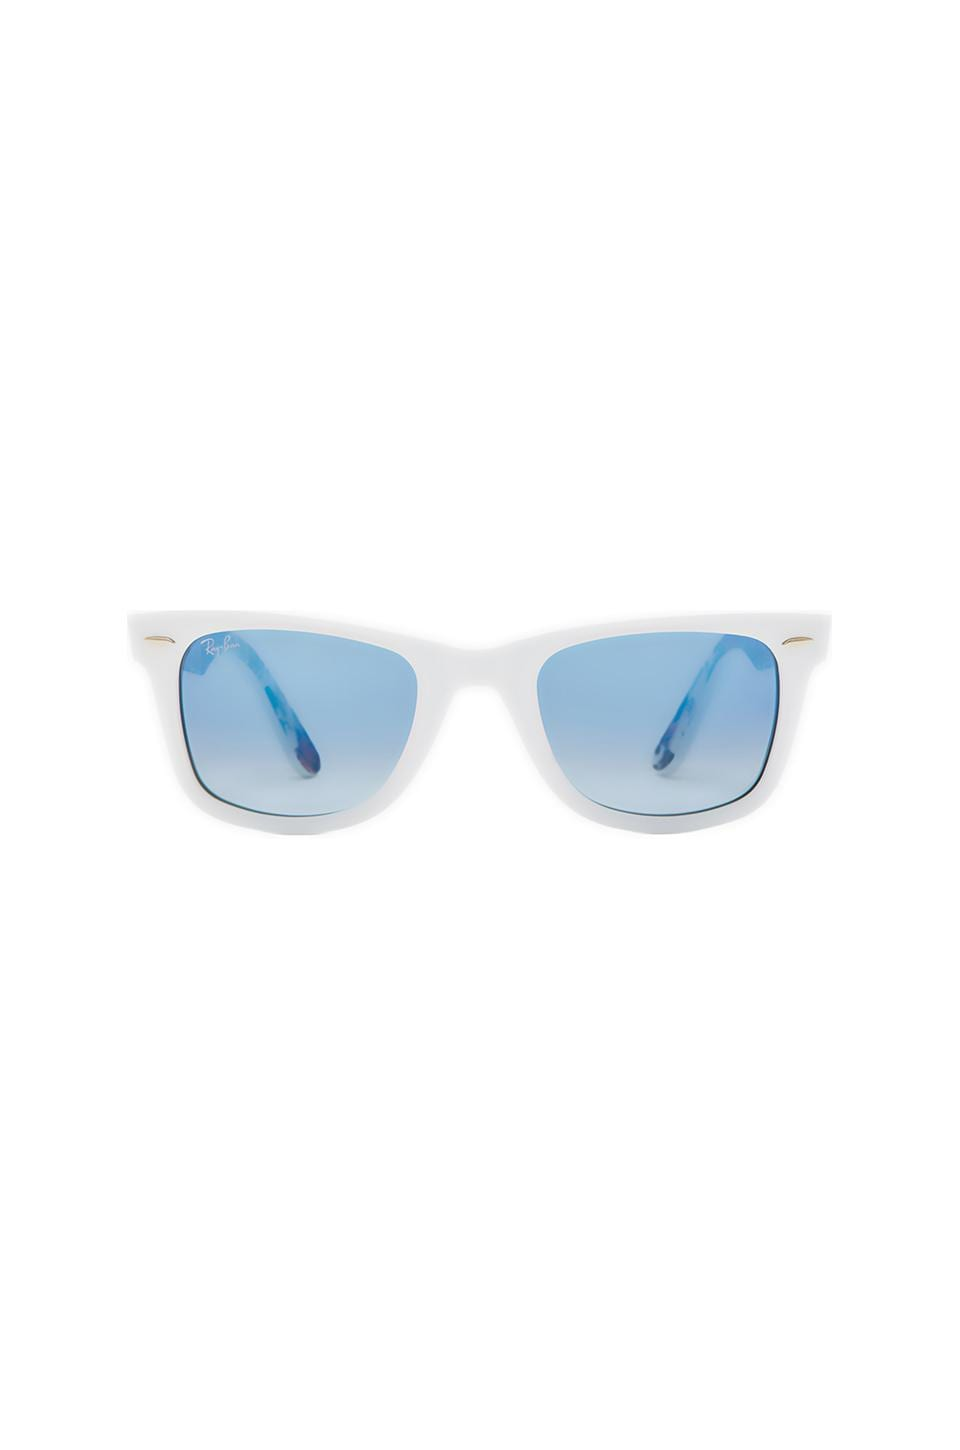 Ray-Ban Original Wayfarer in White